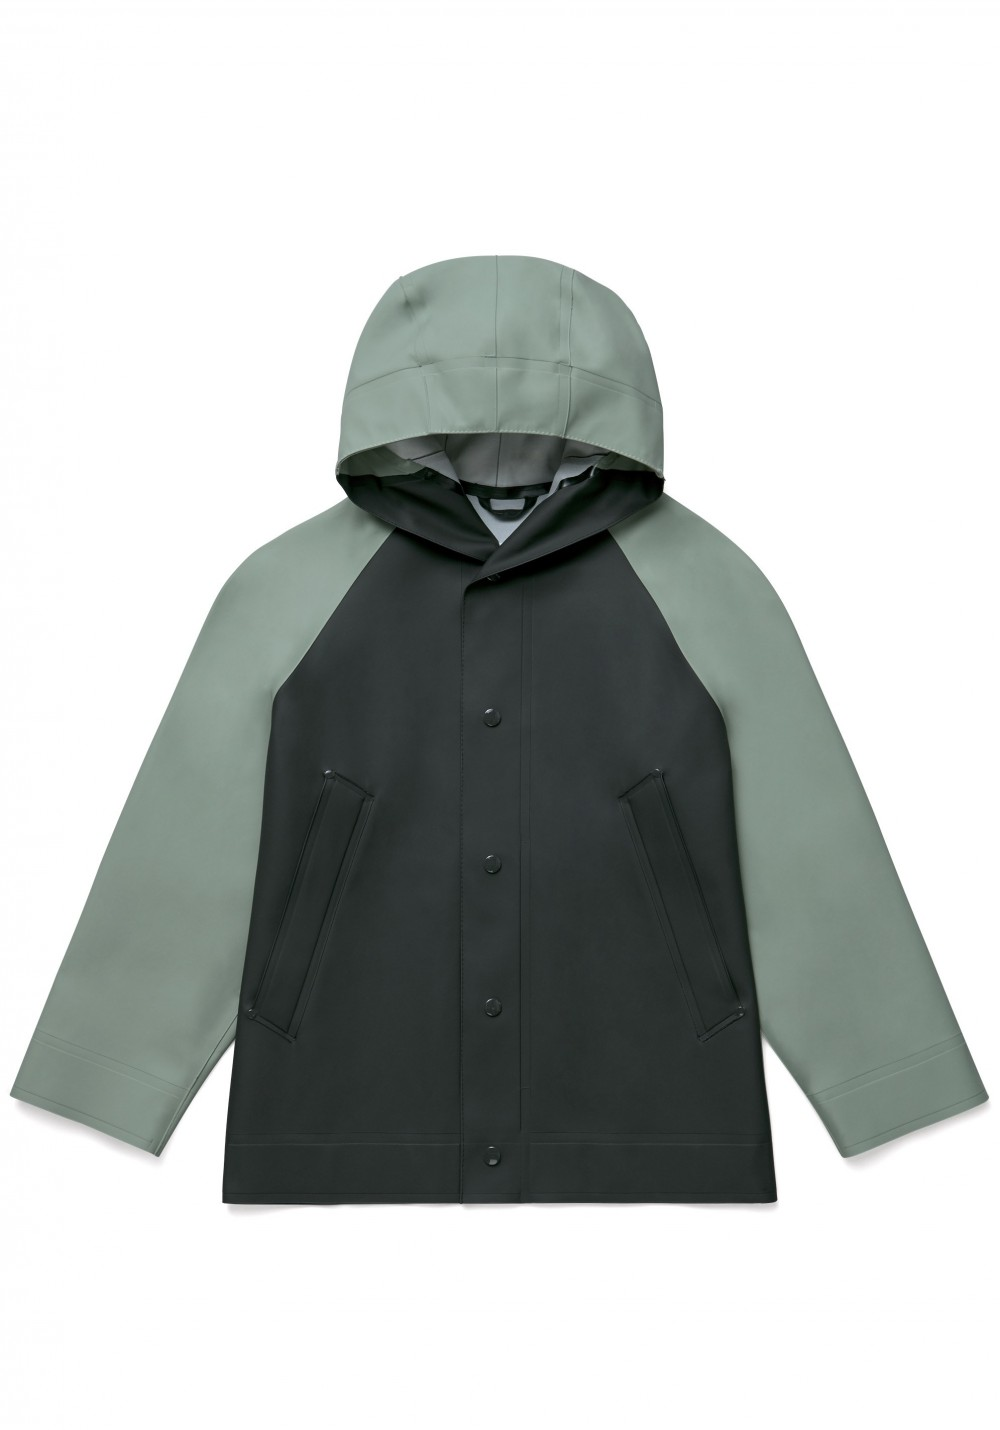 03 Stutterheim for Marni SS18_Man_RaglanJacket_KhakiGreenBlack_Product